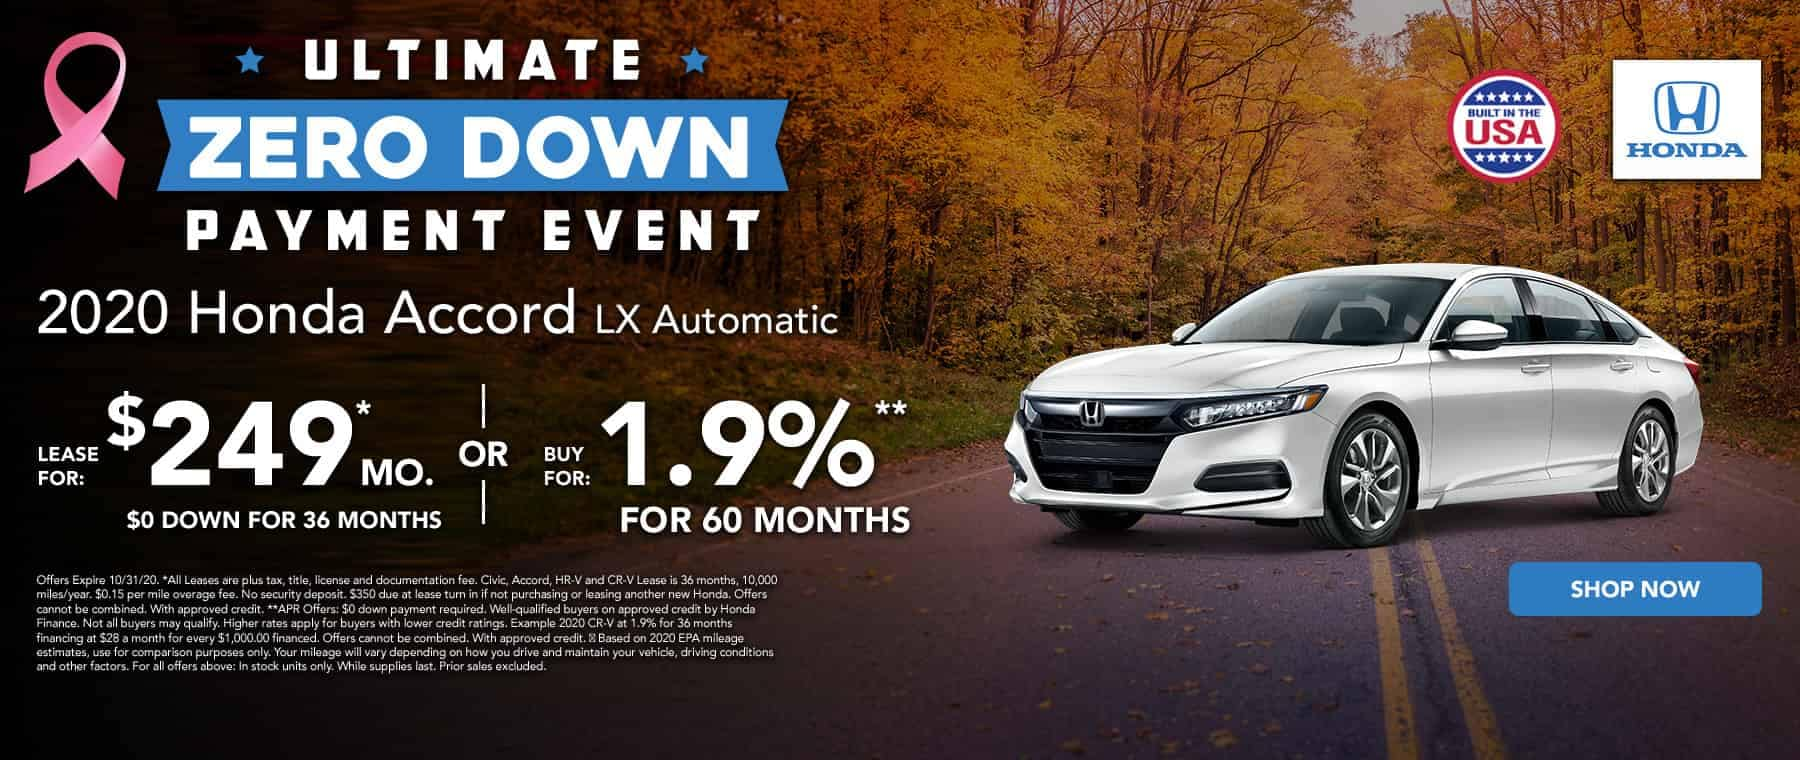 2020 HONDA ACCORD $249 PER MONTH